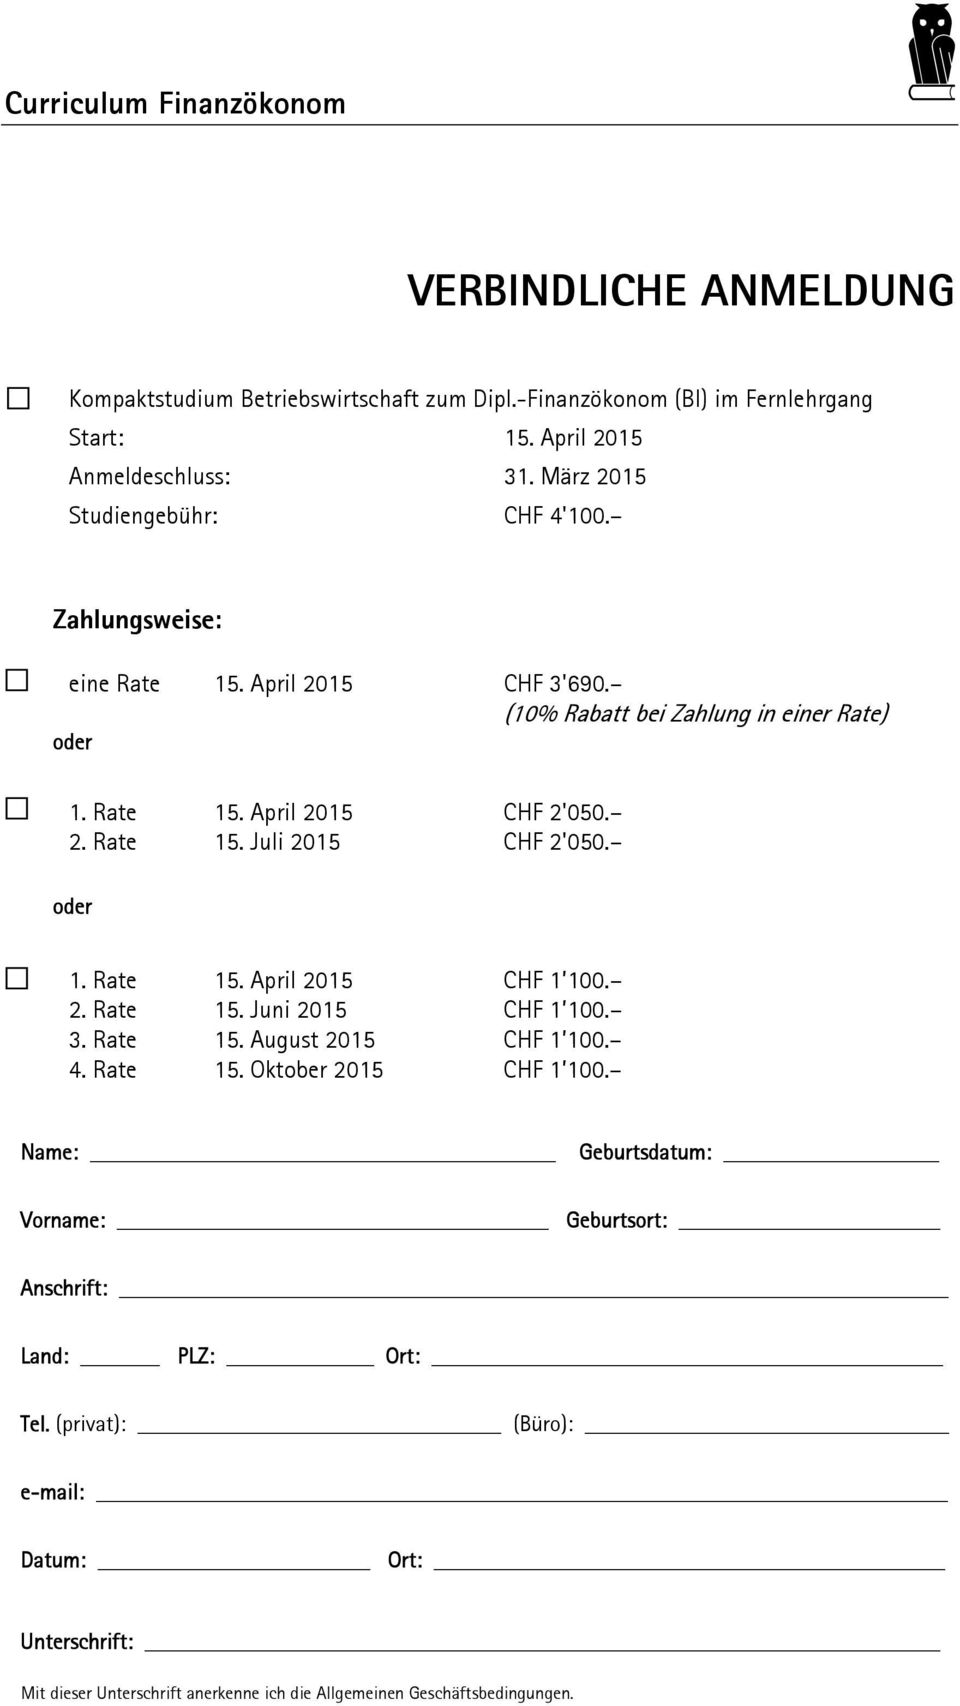 oder 1. Rate 15. April 2015 CHF 1 100. 2. Rate 15. Juni 2015 CHF 1 100. 3. Rate 15. August 2015 CHF 1 100. 4. Rate 15. Oktober 2015 CHF 1 100.